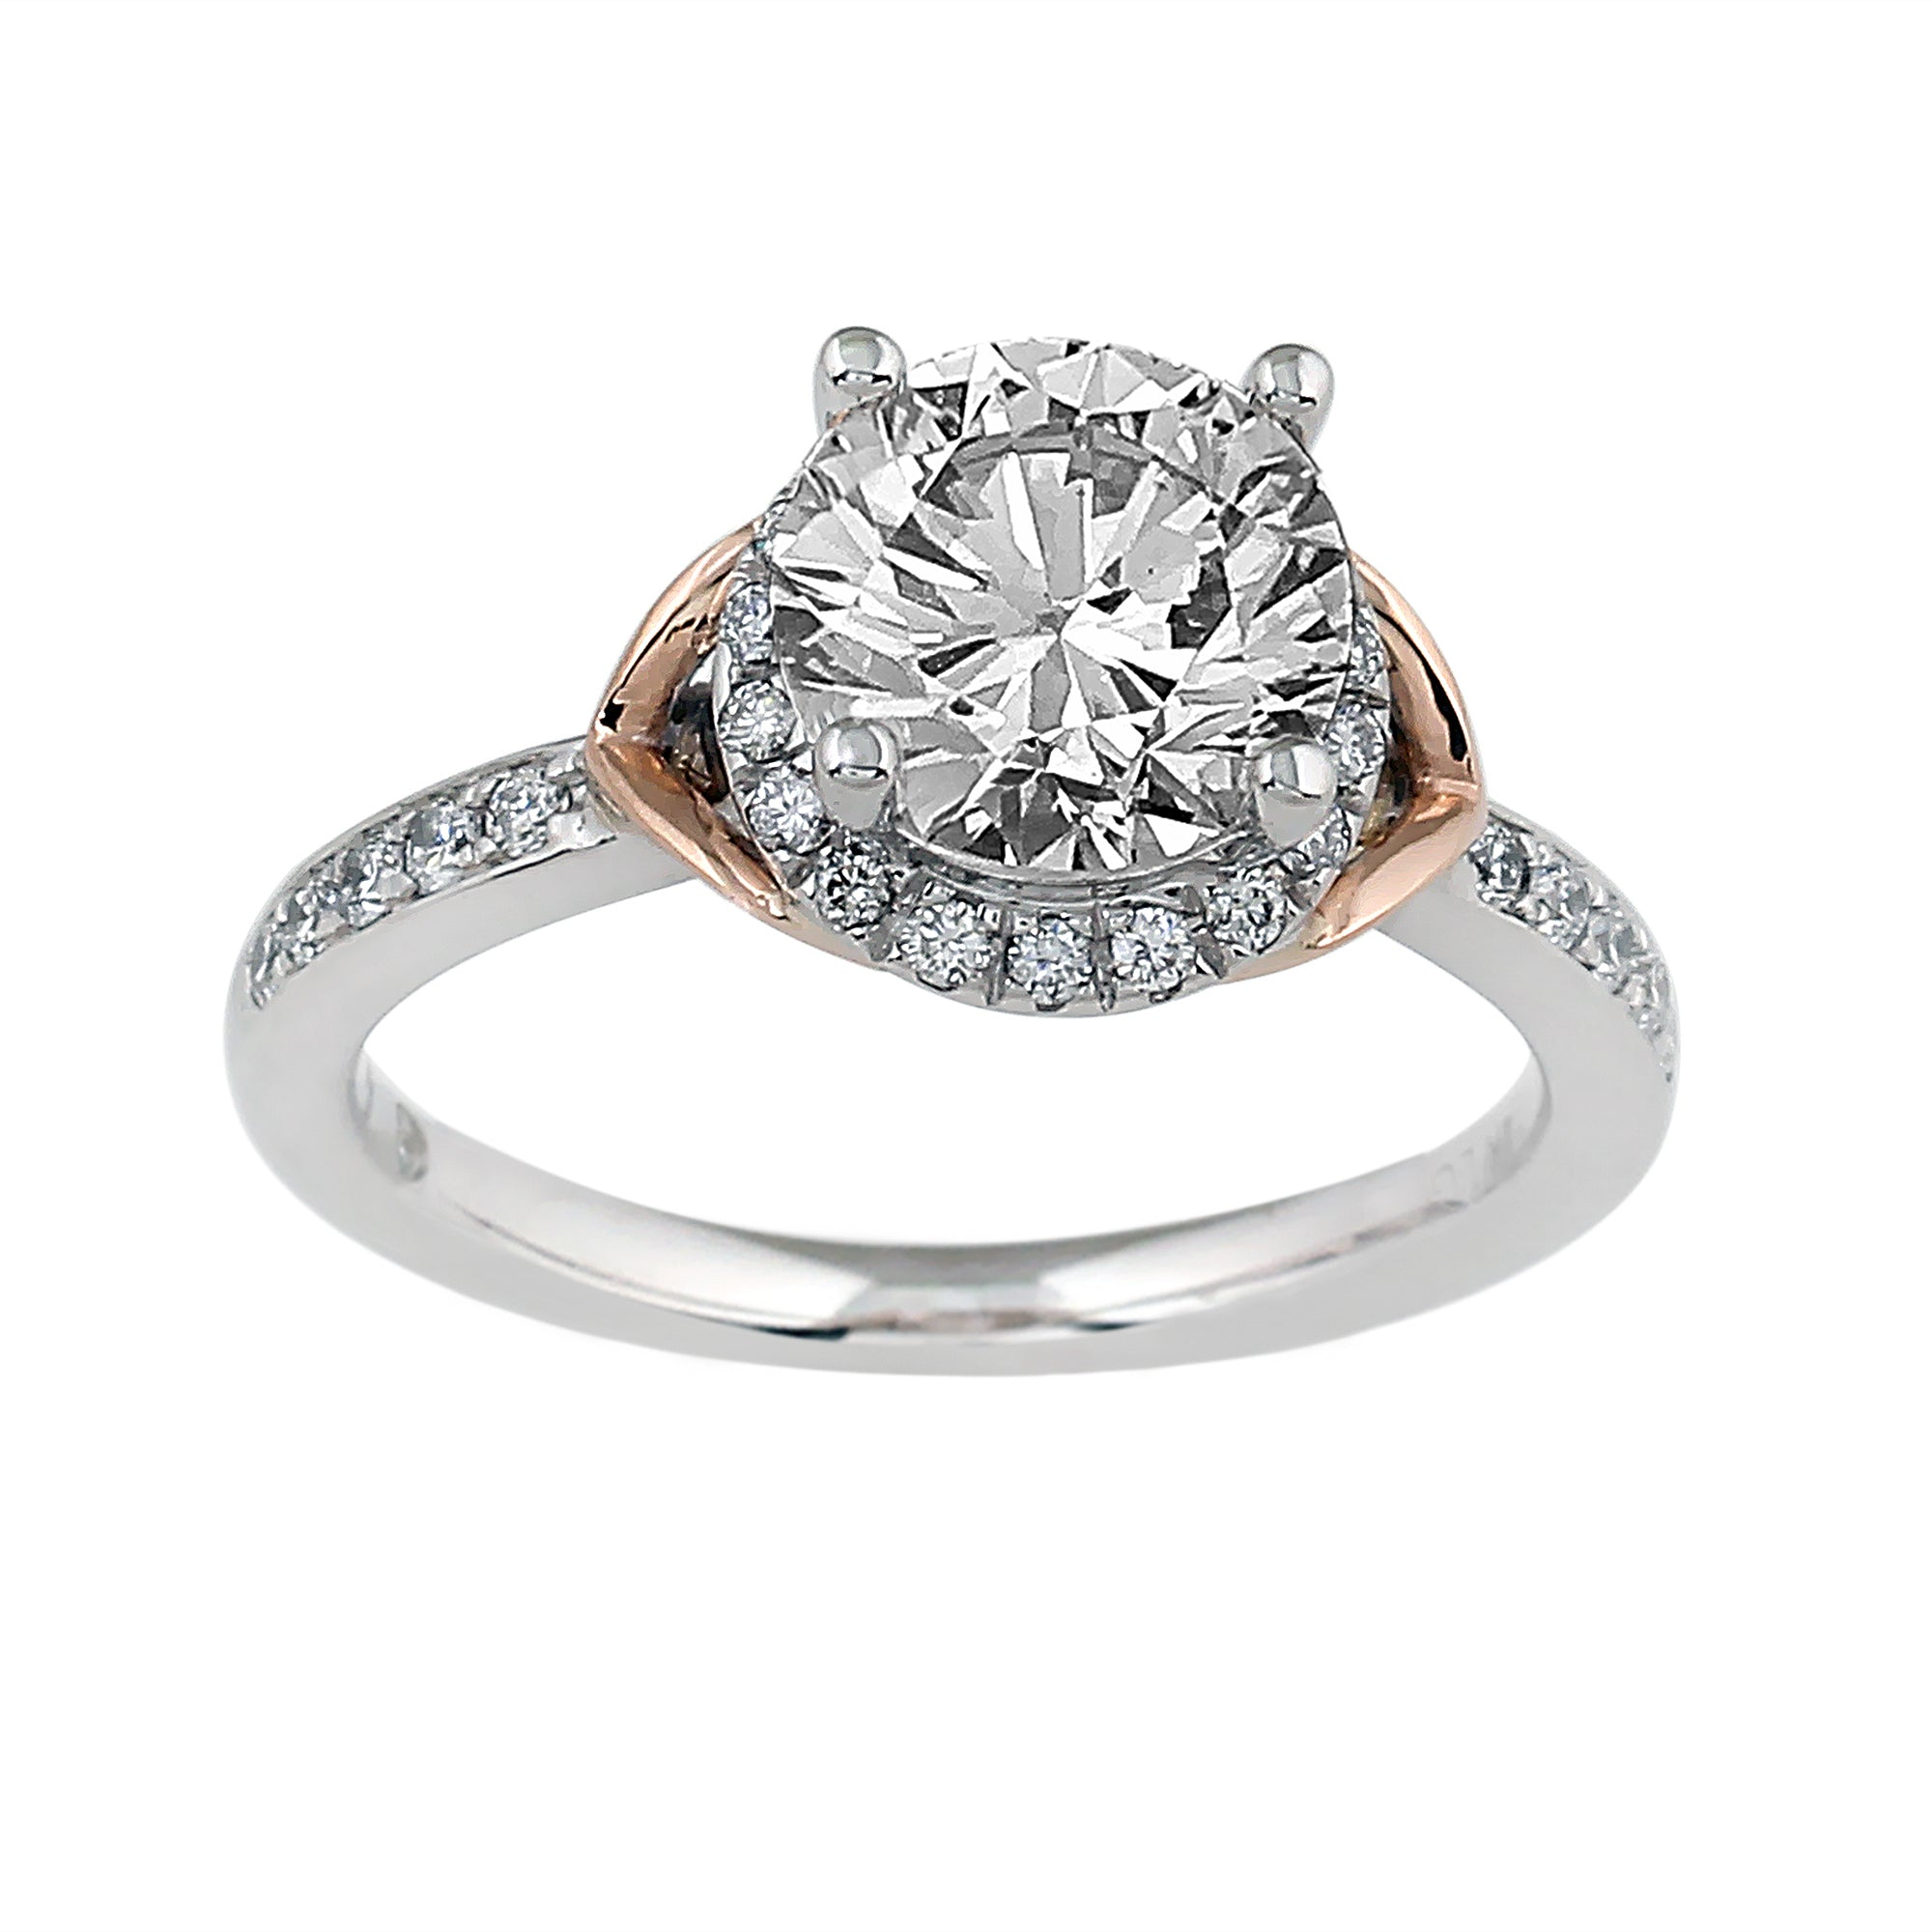 14K White Gold 0.30CTTW Lab-Grown Diamond Semi-Mount Ring Rose Gold Accent